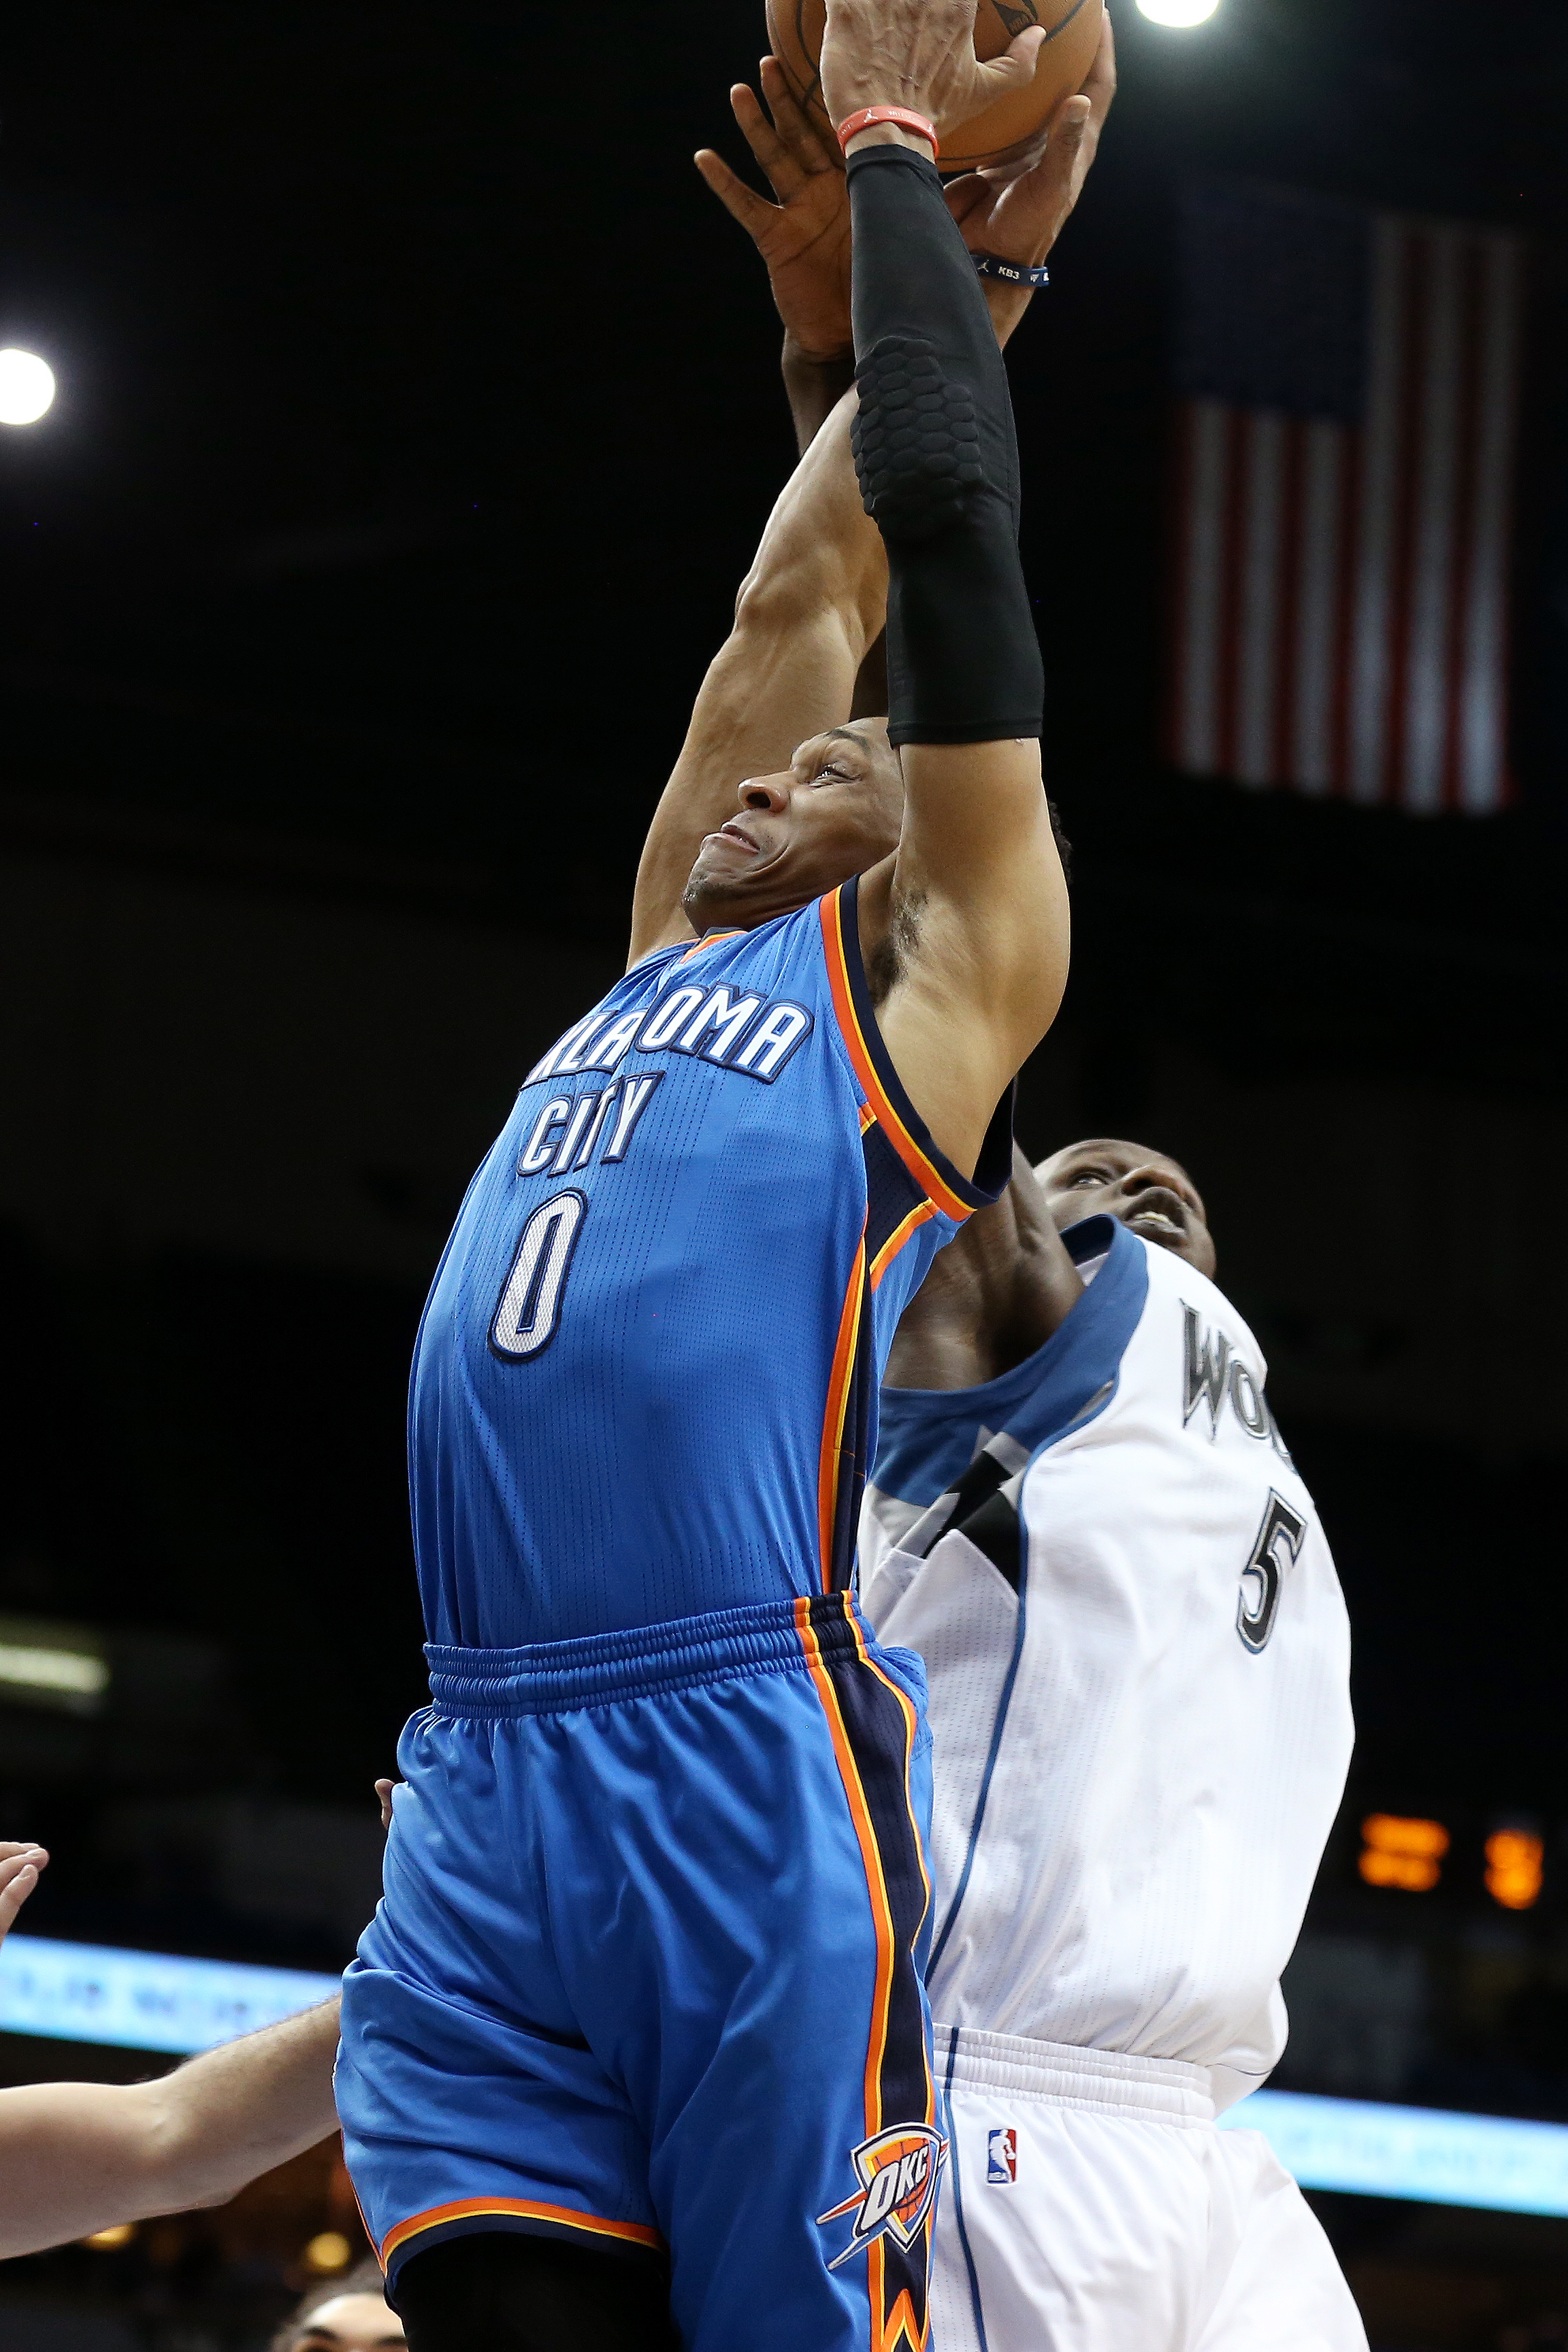 MINNEAPOLIS, MN -  JANUARY 12: Russell Westbrook #0 of the Oklahoma City Thunder goes for the dunk during the game against the Minnesota Timberwolves on January 12, 2016 at Target Center in Minneapolis, Minnesota. (Photo by Jordan Johnson/NBAE via Getty I